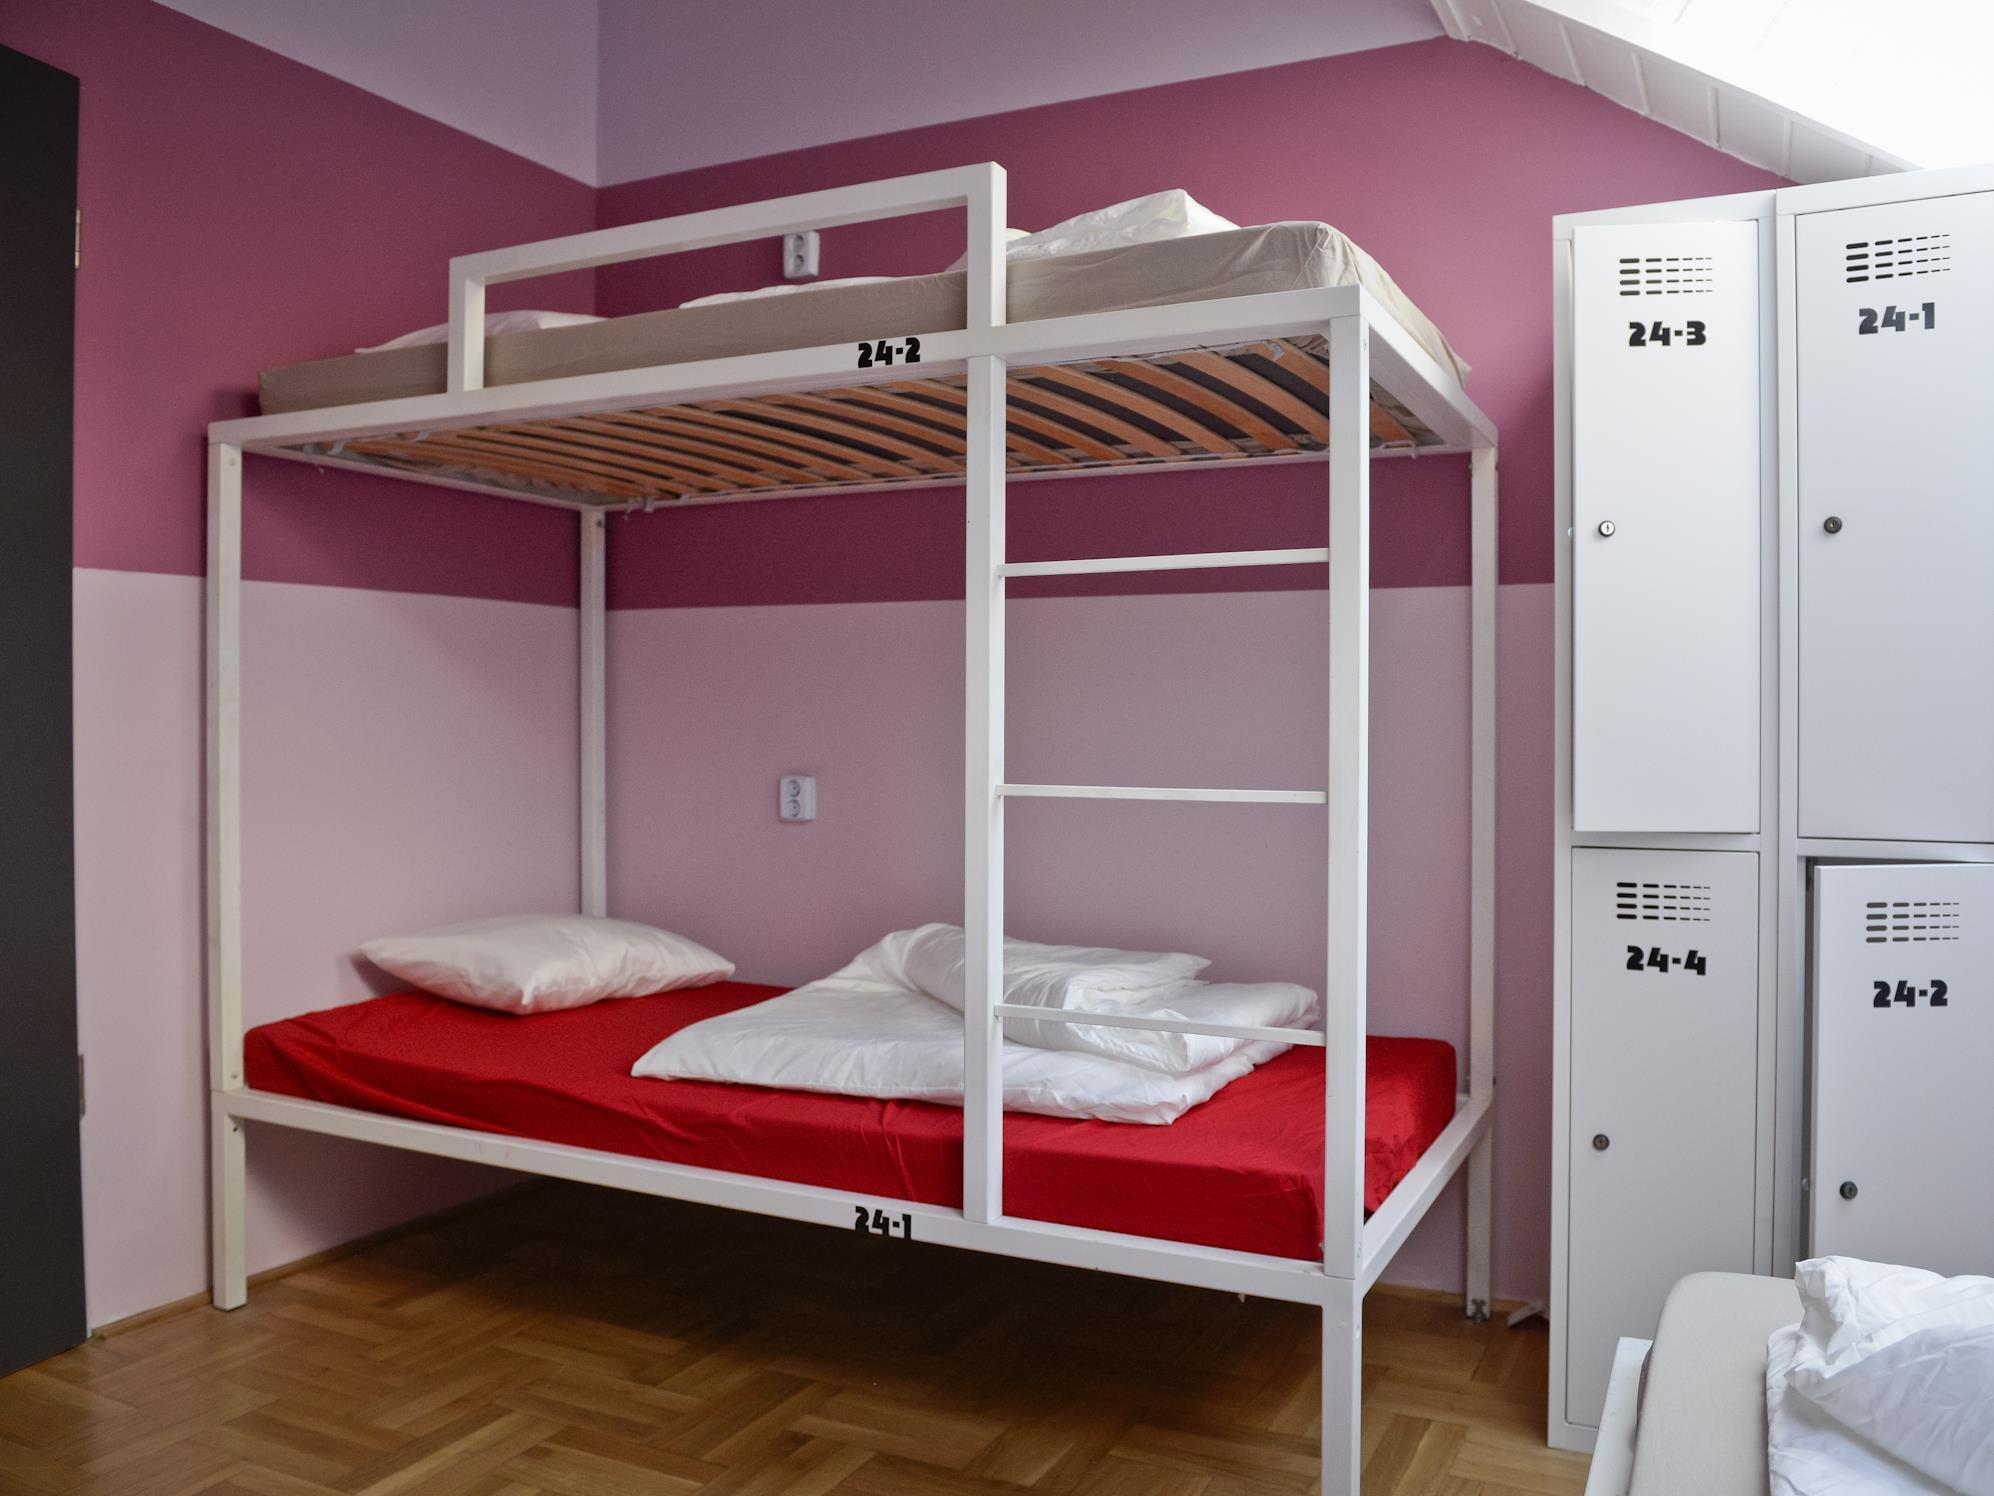 1 persona en dormitori compartit de 6 llits amb bany compartit ‒ Només per a dones (1 Person in 6-Bed Dormitory with Shared Bathroom - Female Only)